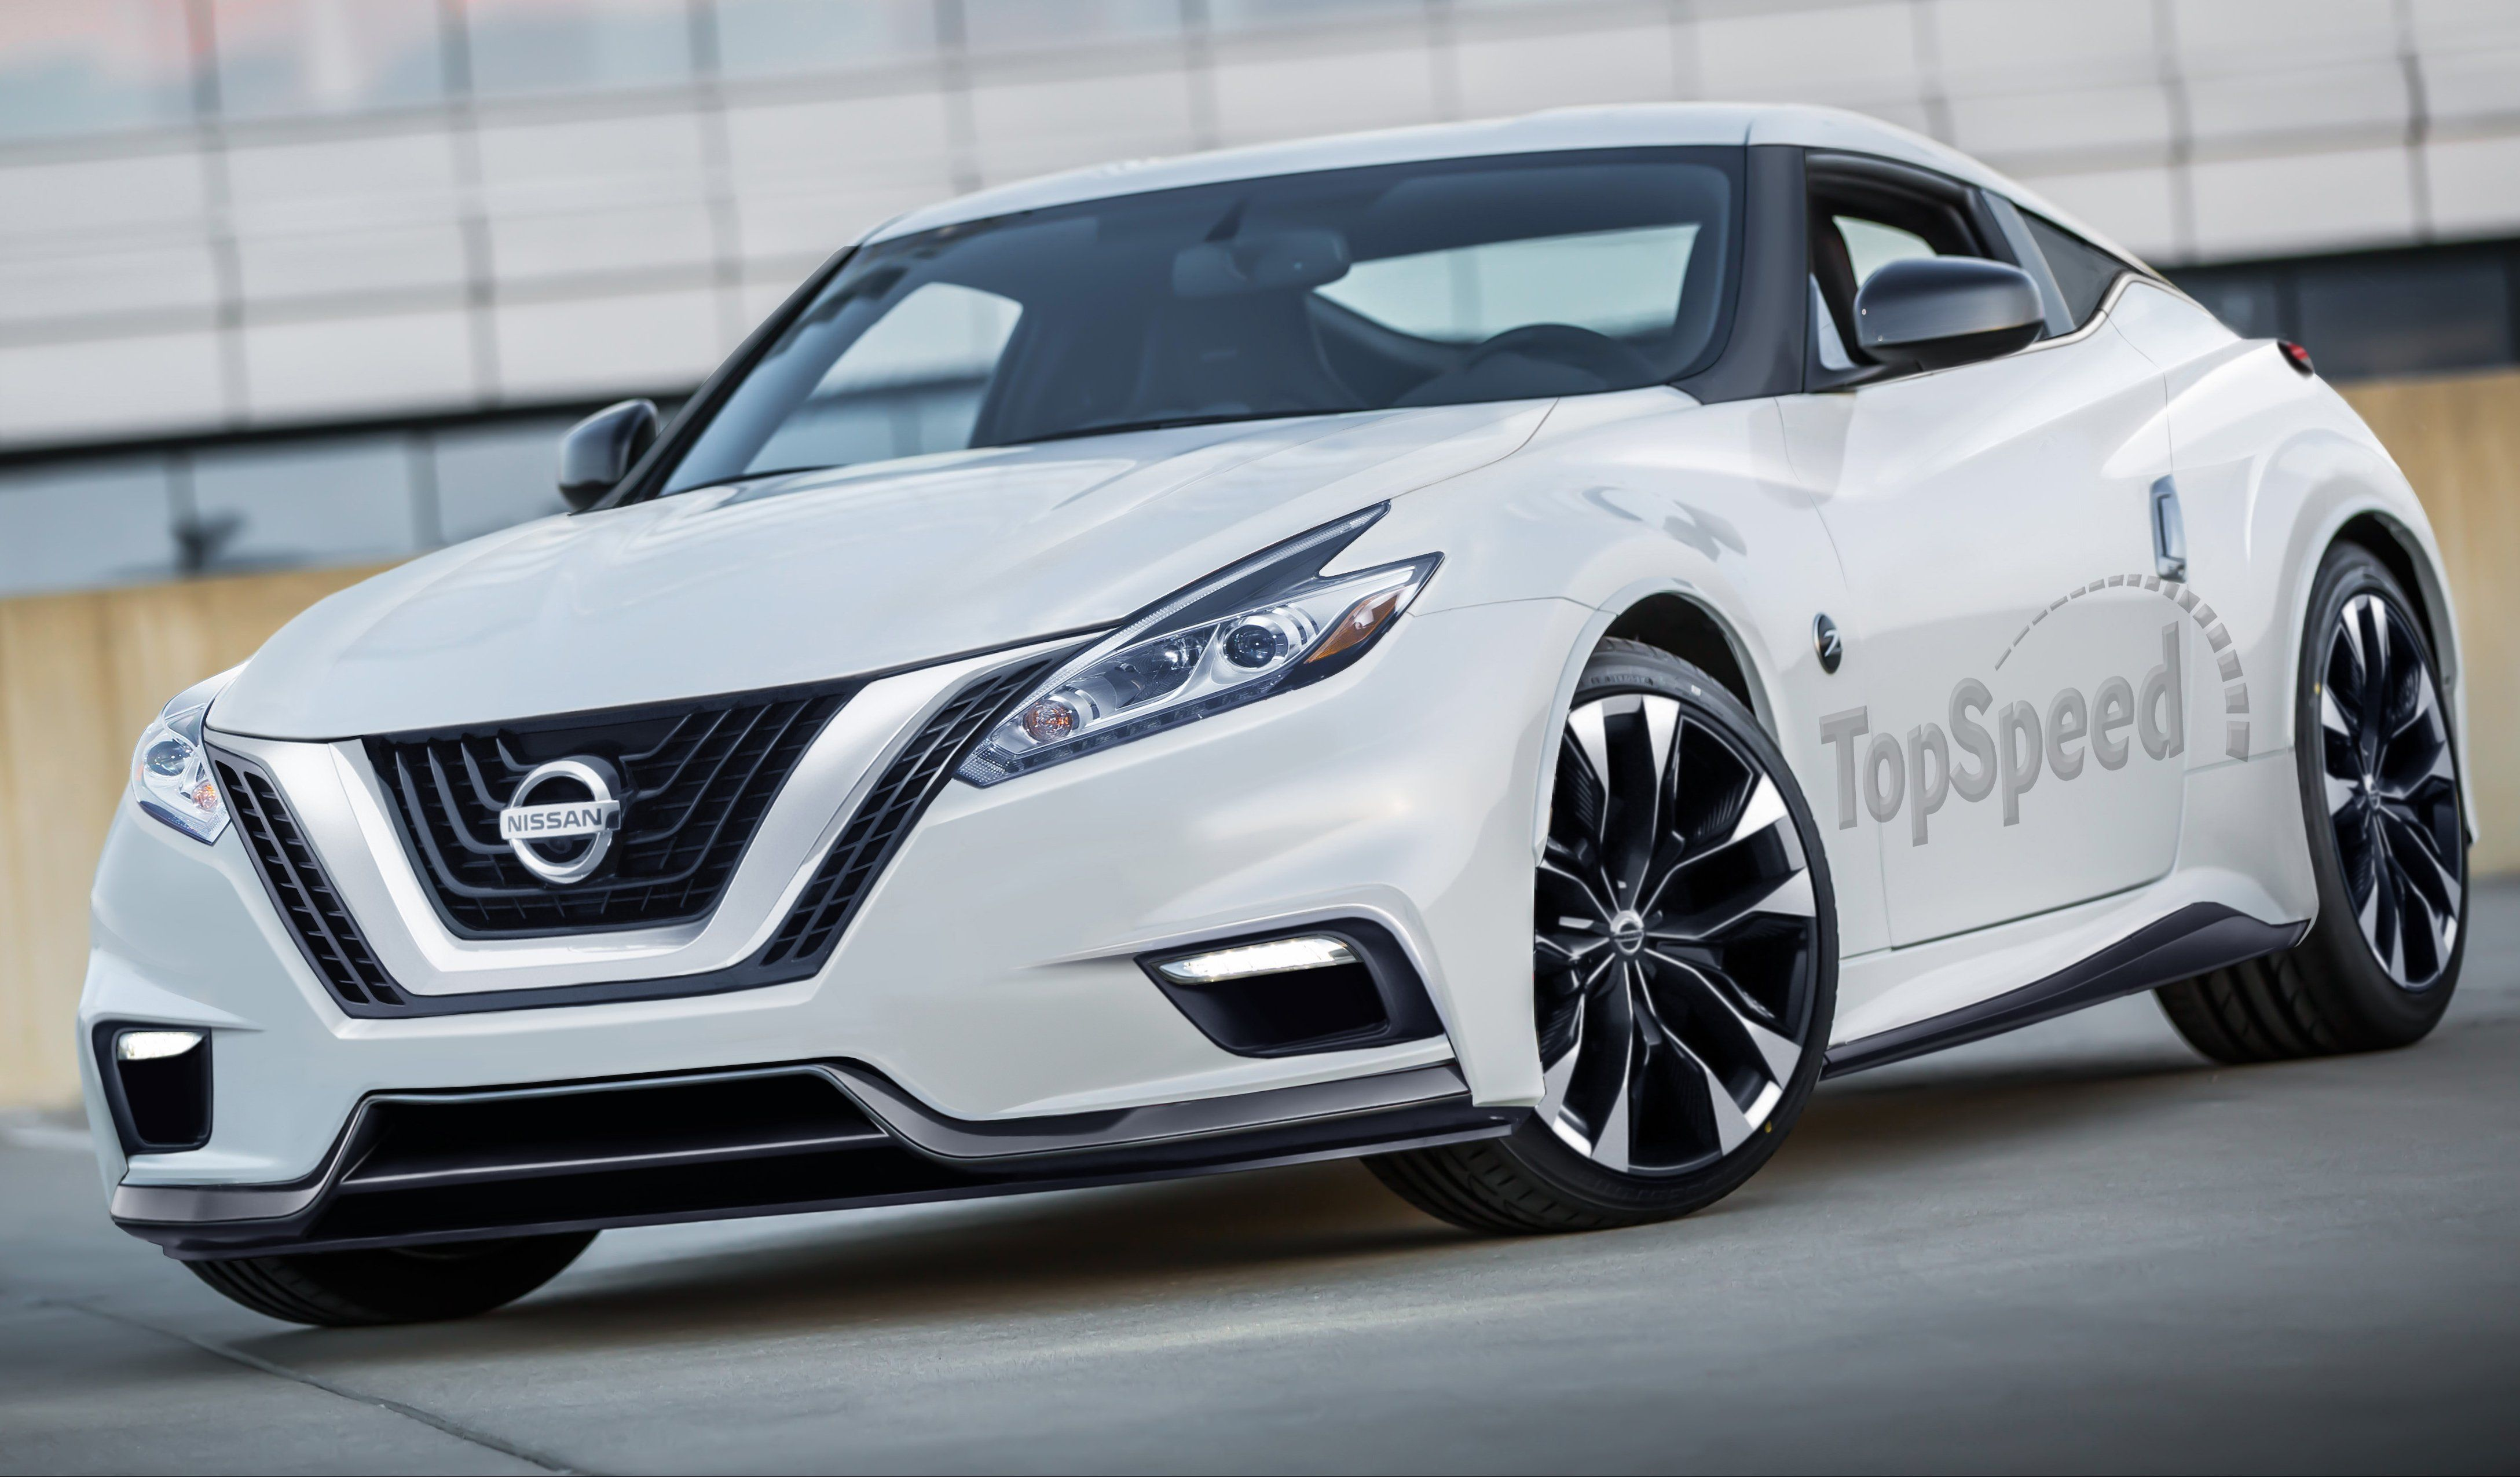 2020 Nissan Z Car New Model And Performance Nissan Z Cars Nissan Z Nissan